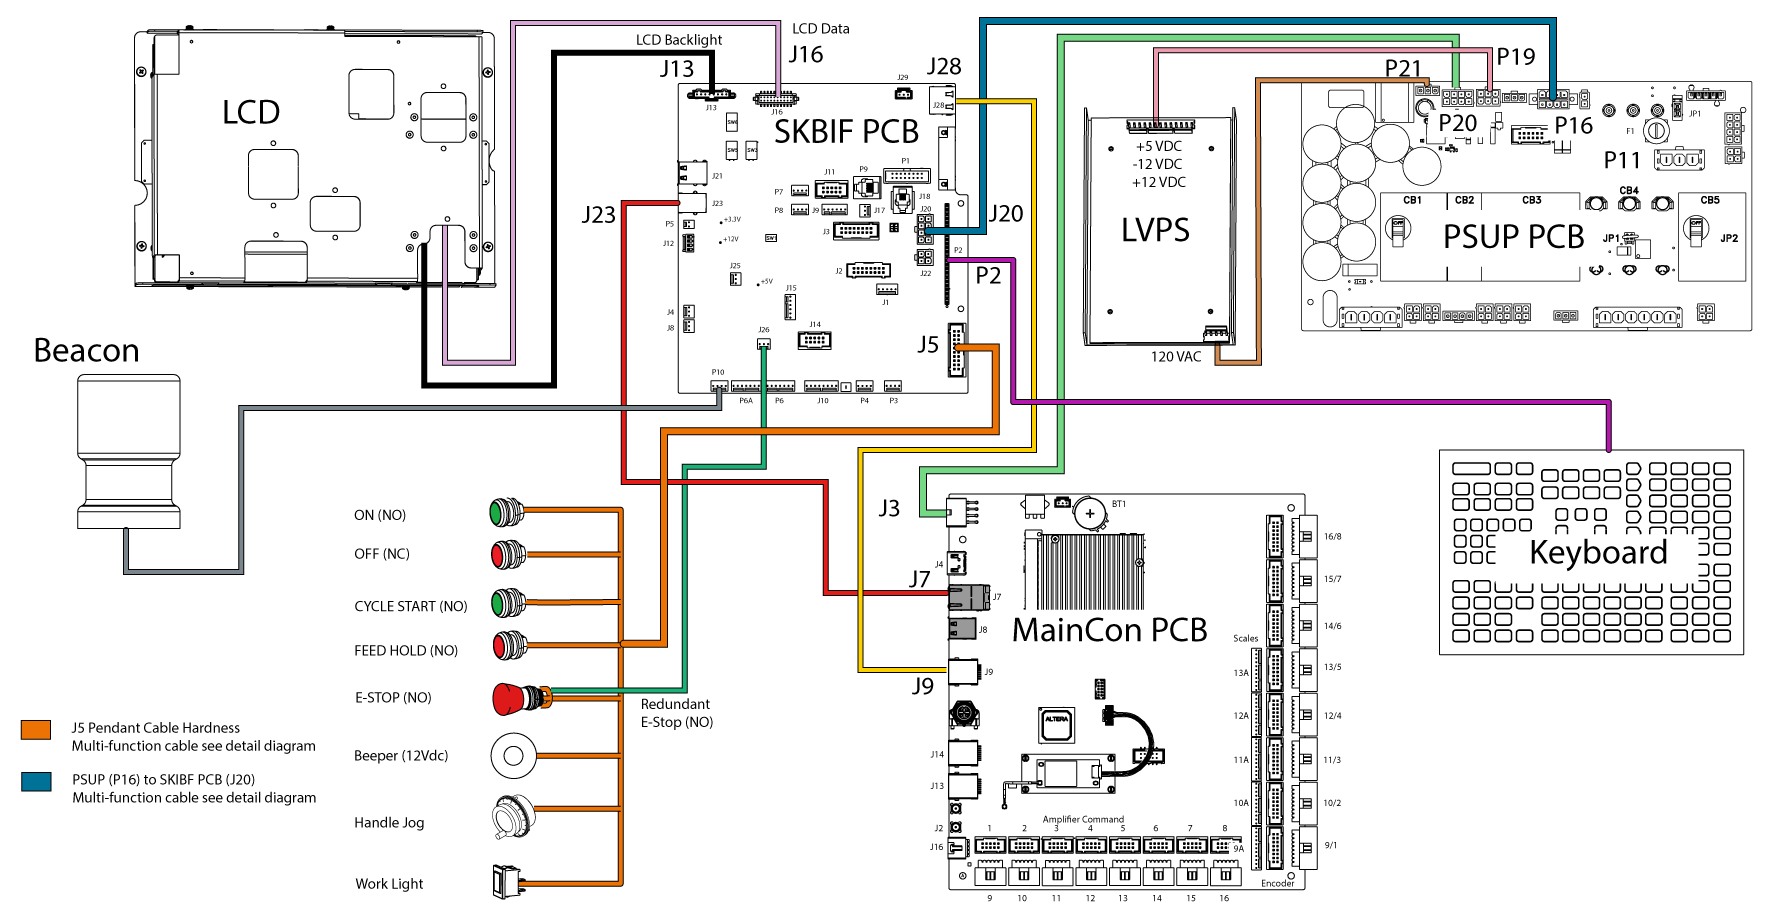 Skbif Lcd Monitor Ngc Troubleshooting Guide World Pool Wiring Diagram Pendant E Stop Circuit